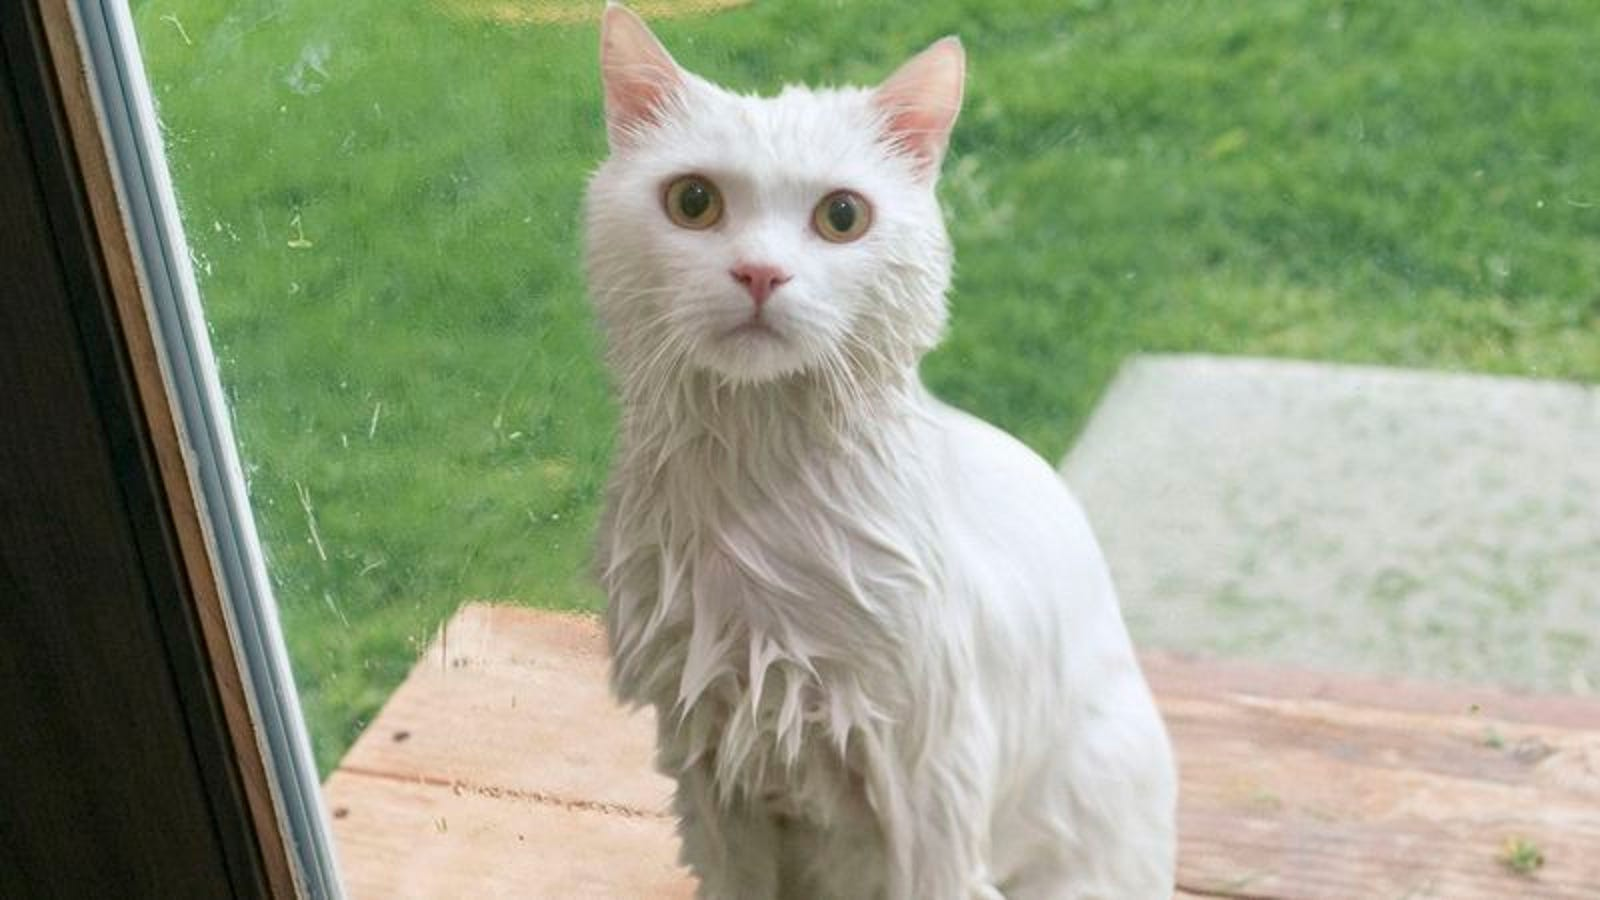 Rain-Drenched Cat Announces It Ready To Stay Inside And Be Part Of Family